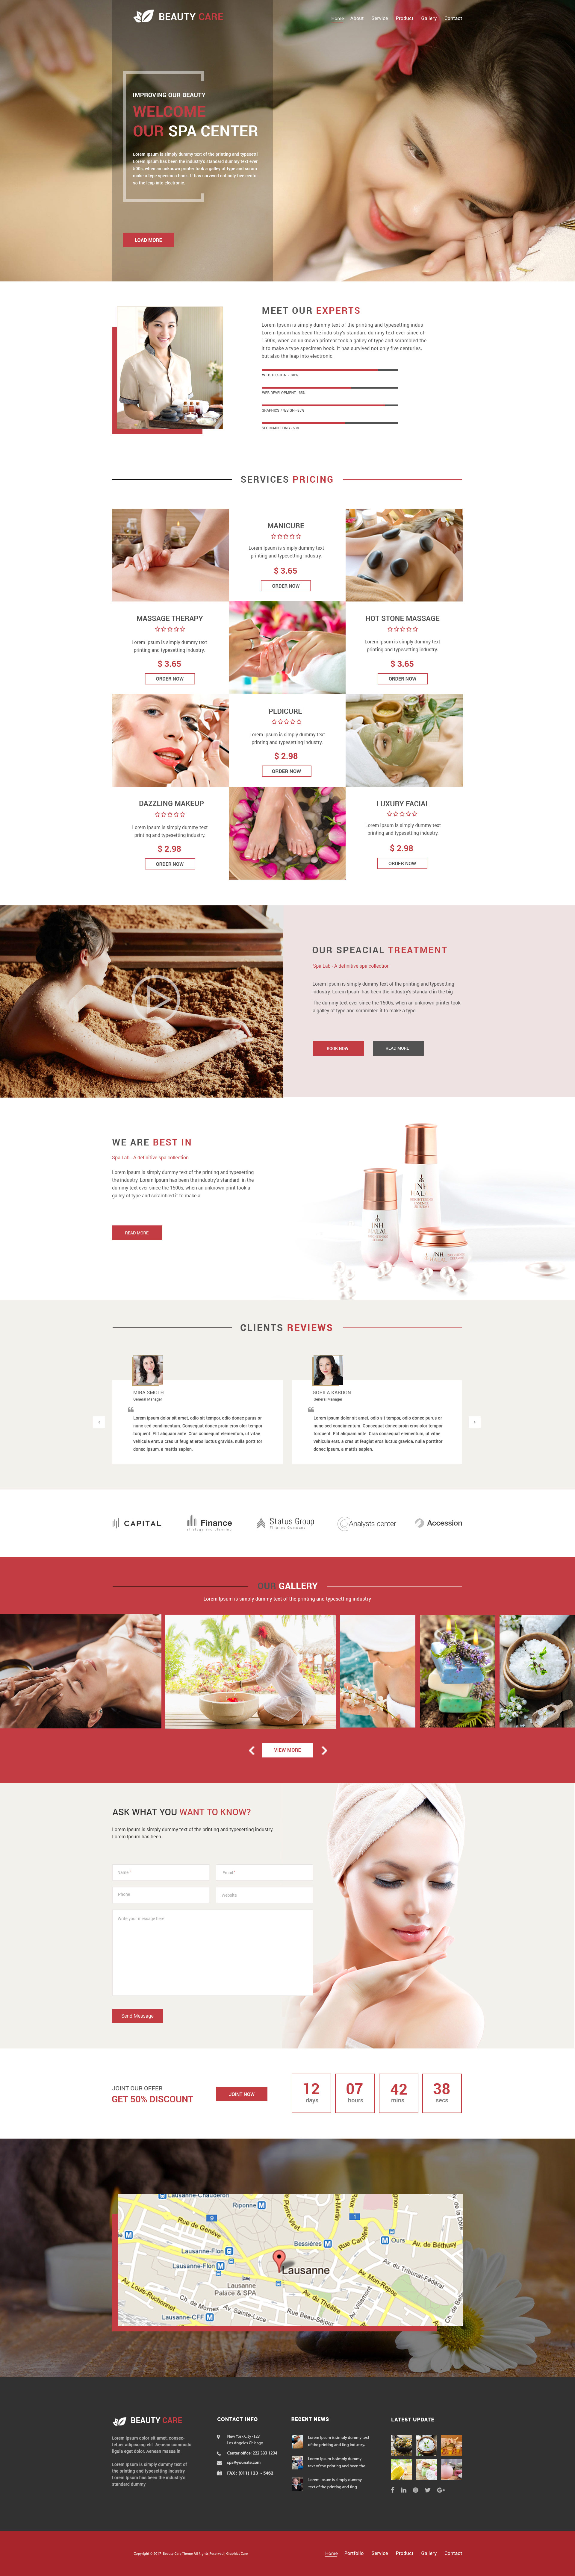 Spa Care Spa Salon Beauty Psd Template By Graphicscare